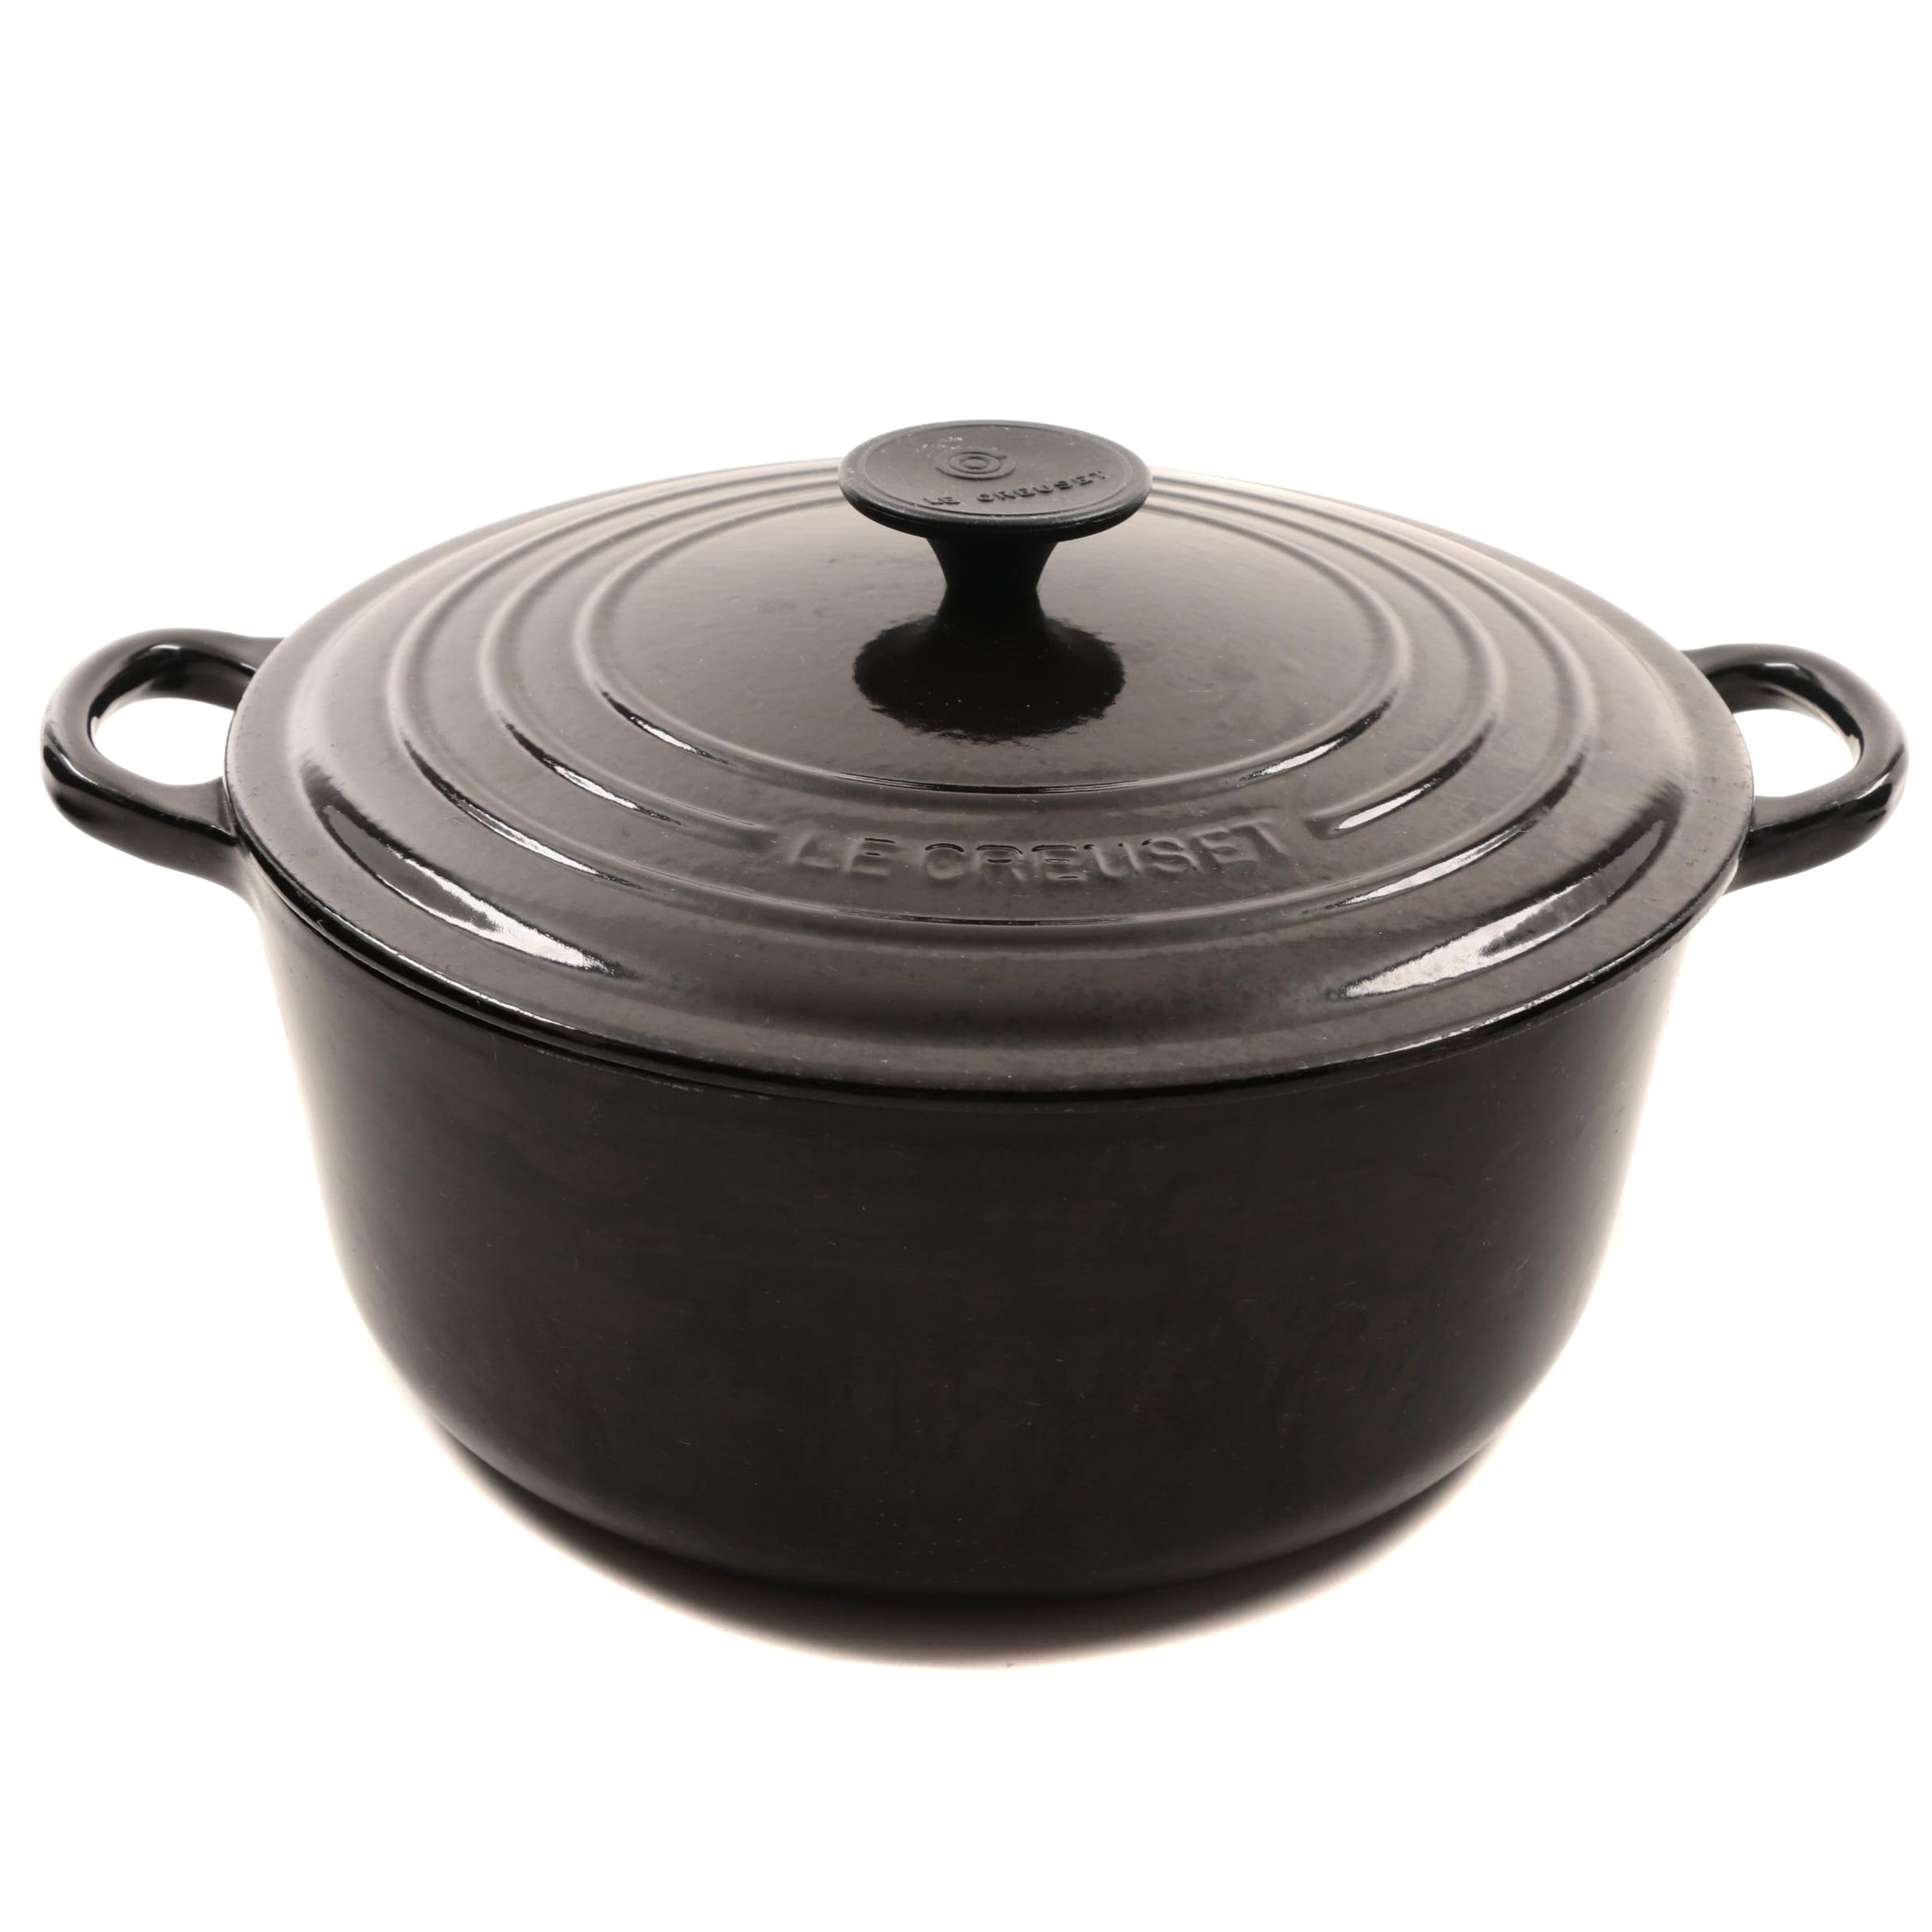 Le Creuset Black Enameled Cast Iron  5.50 Quart French Dutch Oven with Lid